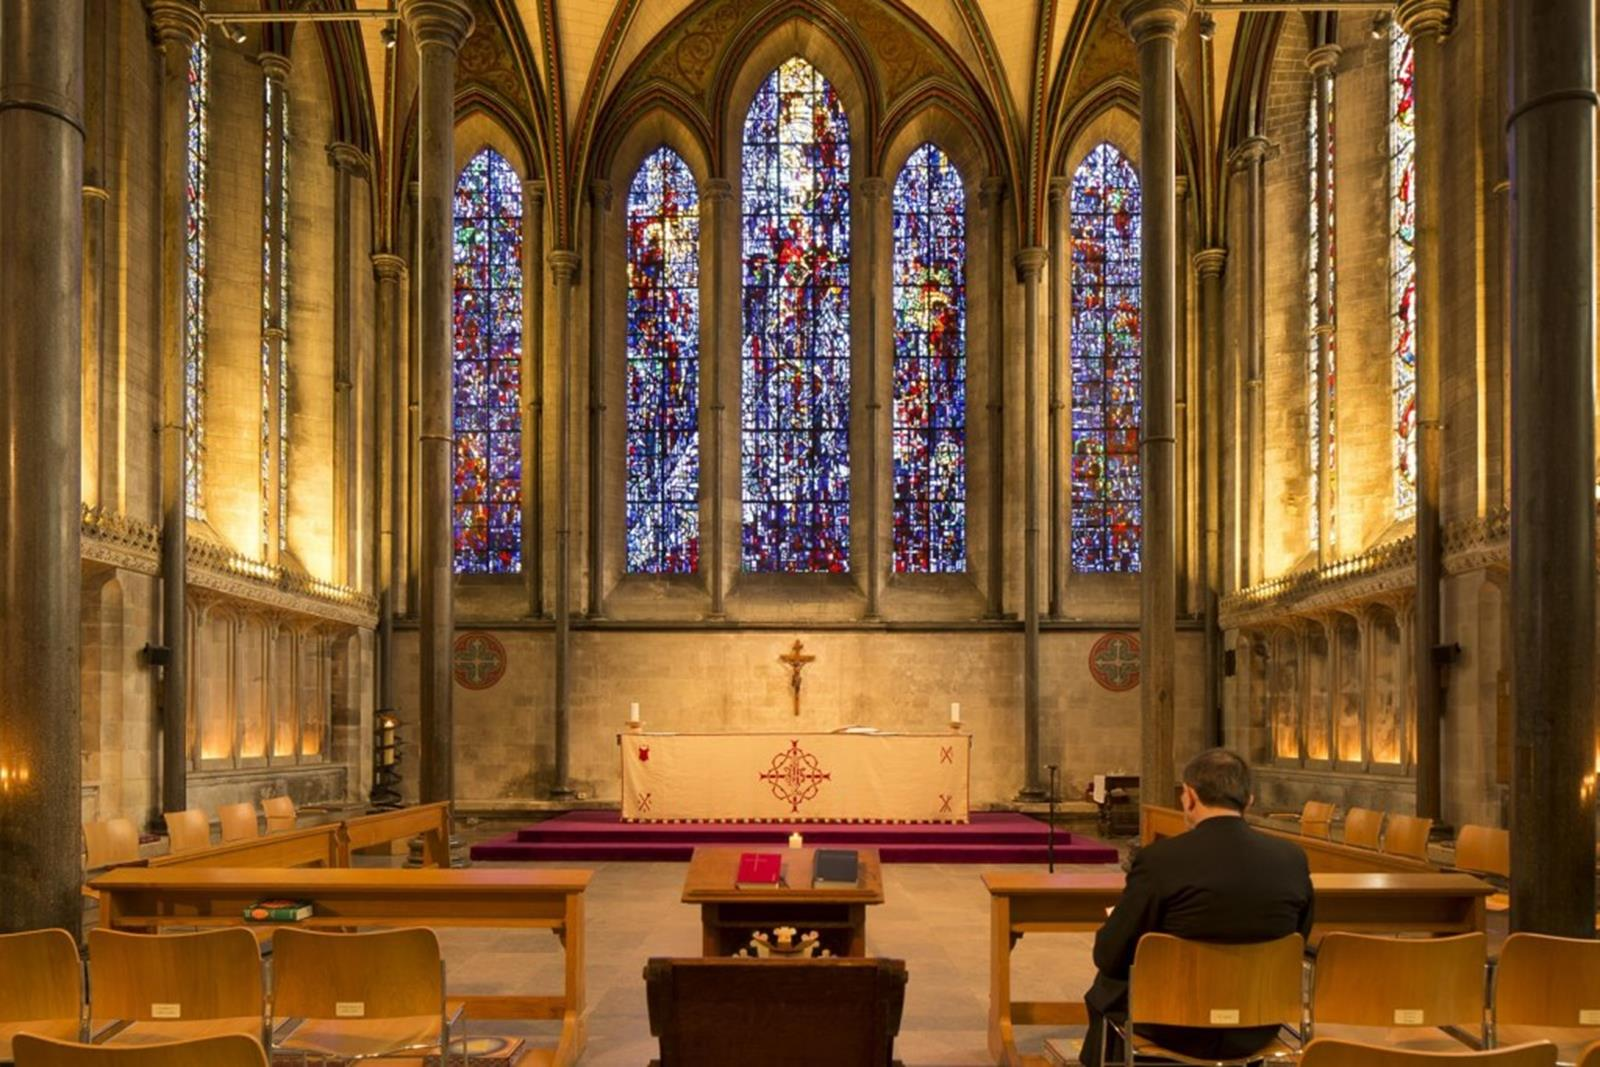 The altar and stained glass windows of Salisbury Cathedral